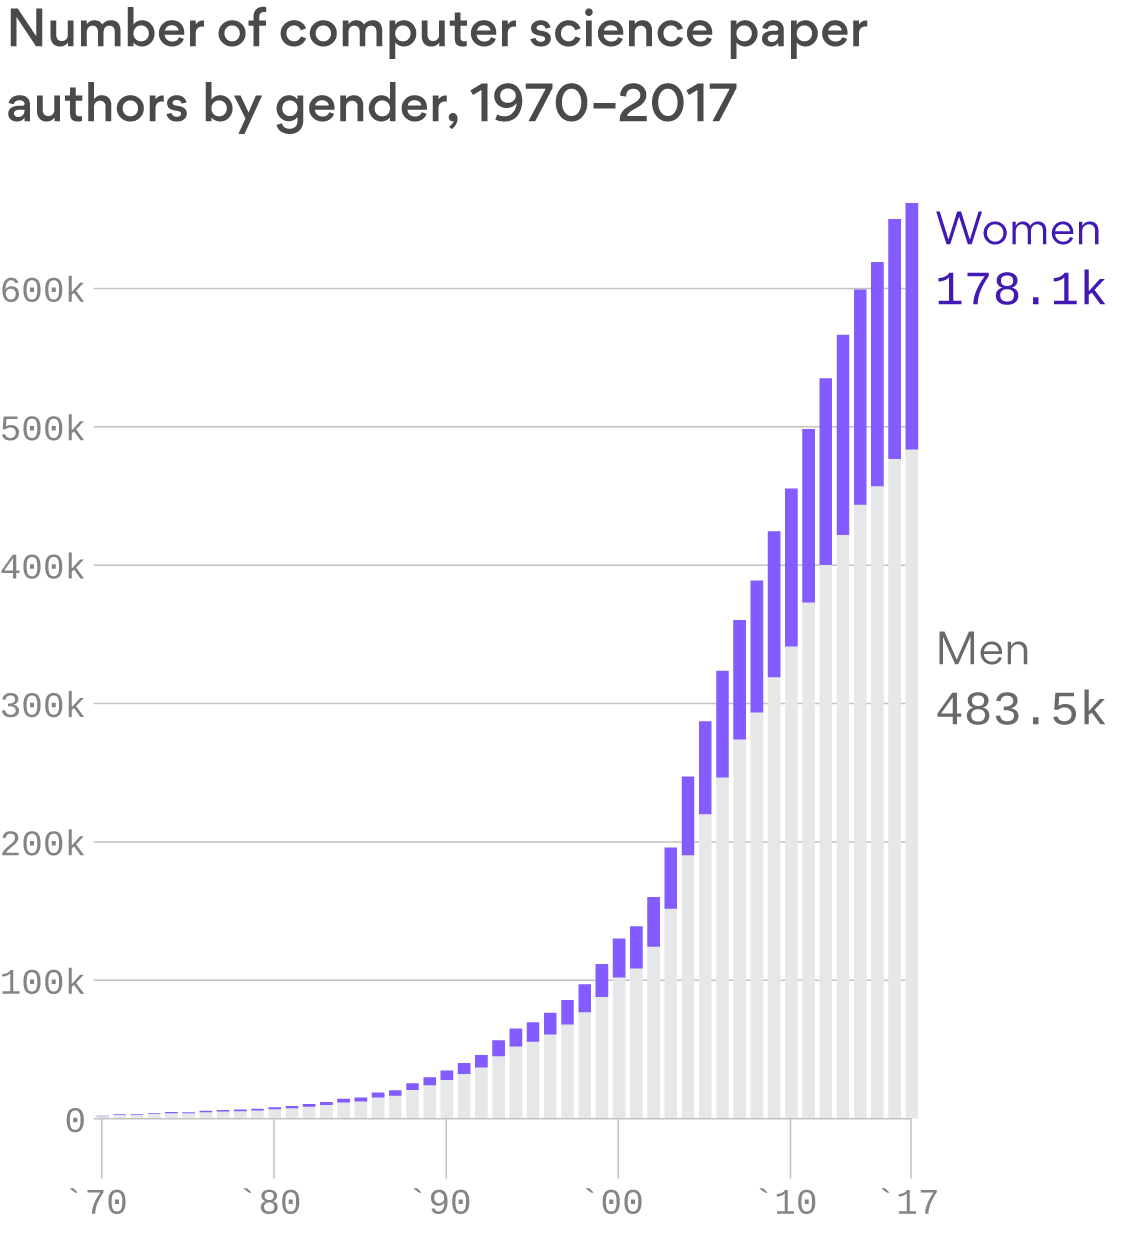 A new study predicts computer science won't close its gender gap until 2137